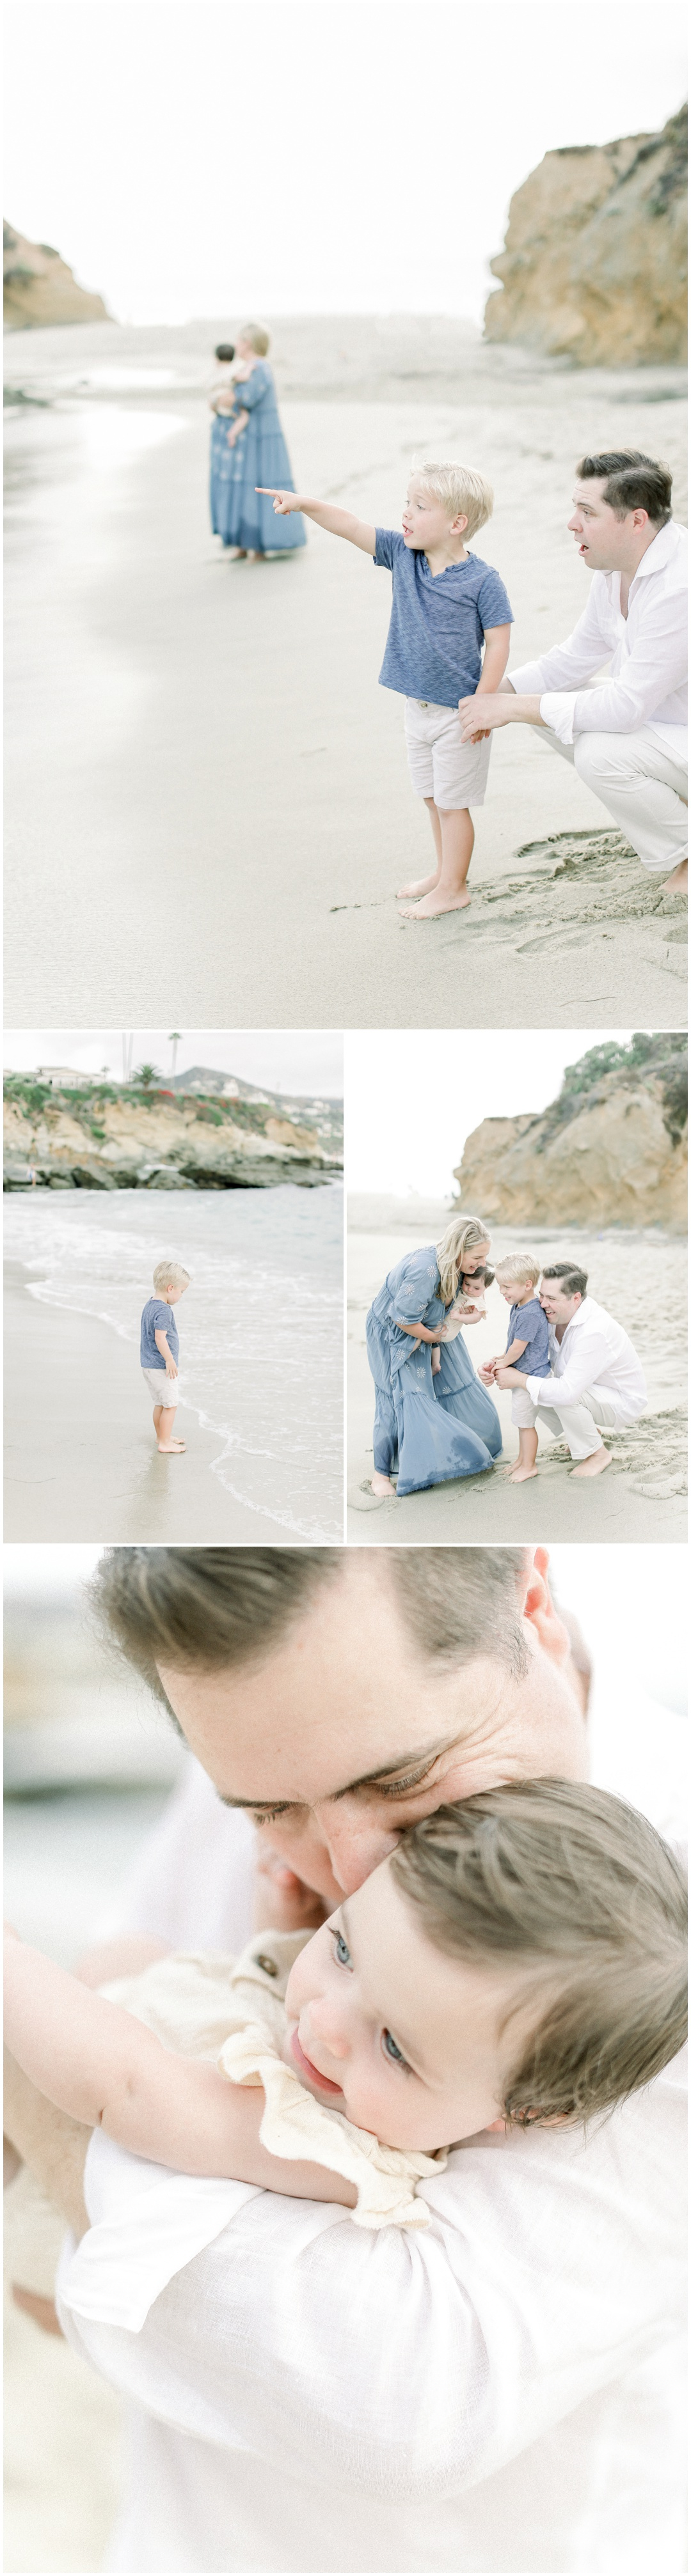 Newport+Beach+Newborn+Photographer+Orange+County+Family+Photographer+Cori+Kleckner+Photography+The+McClure+Family+Gracie+McClure_4383.jpg